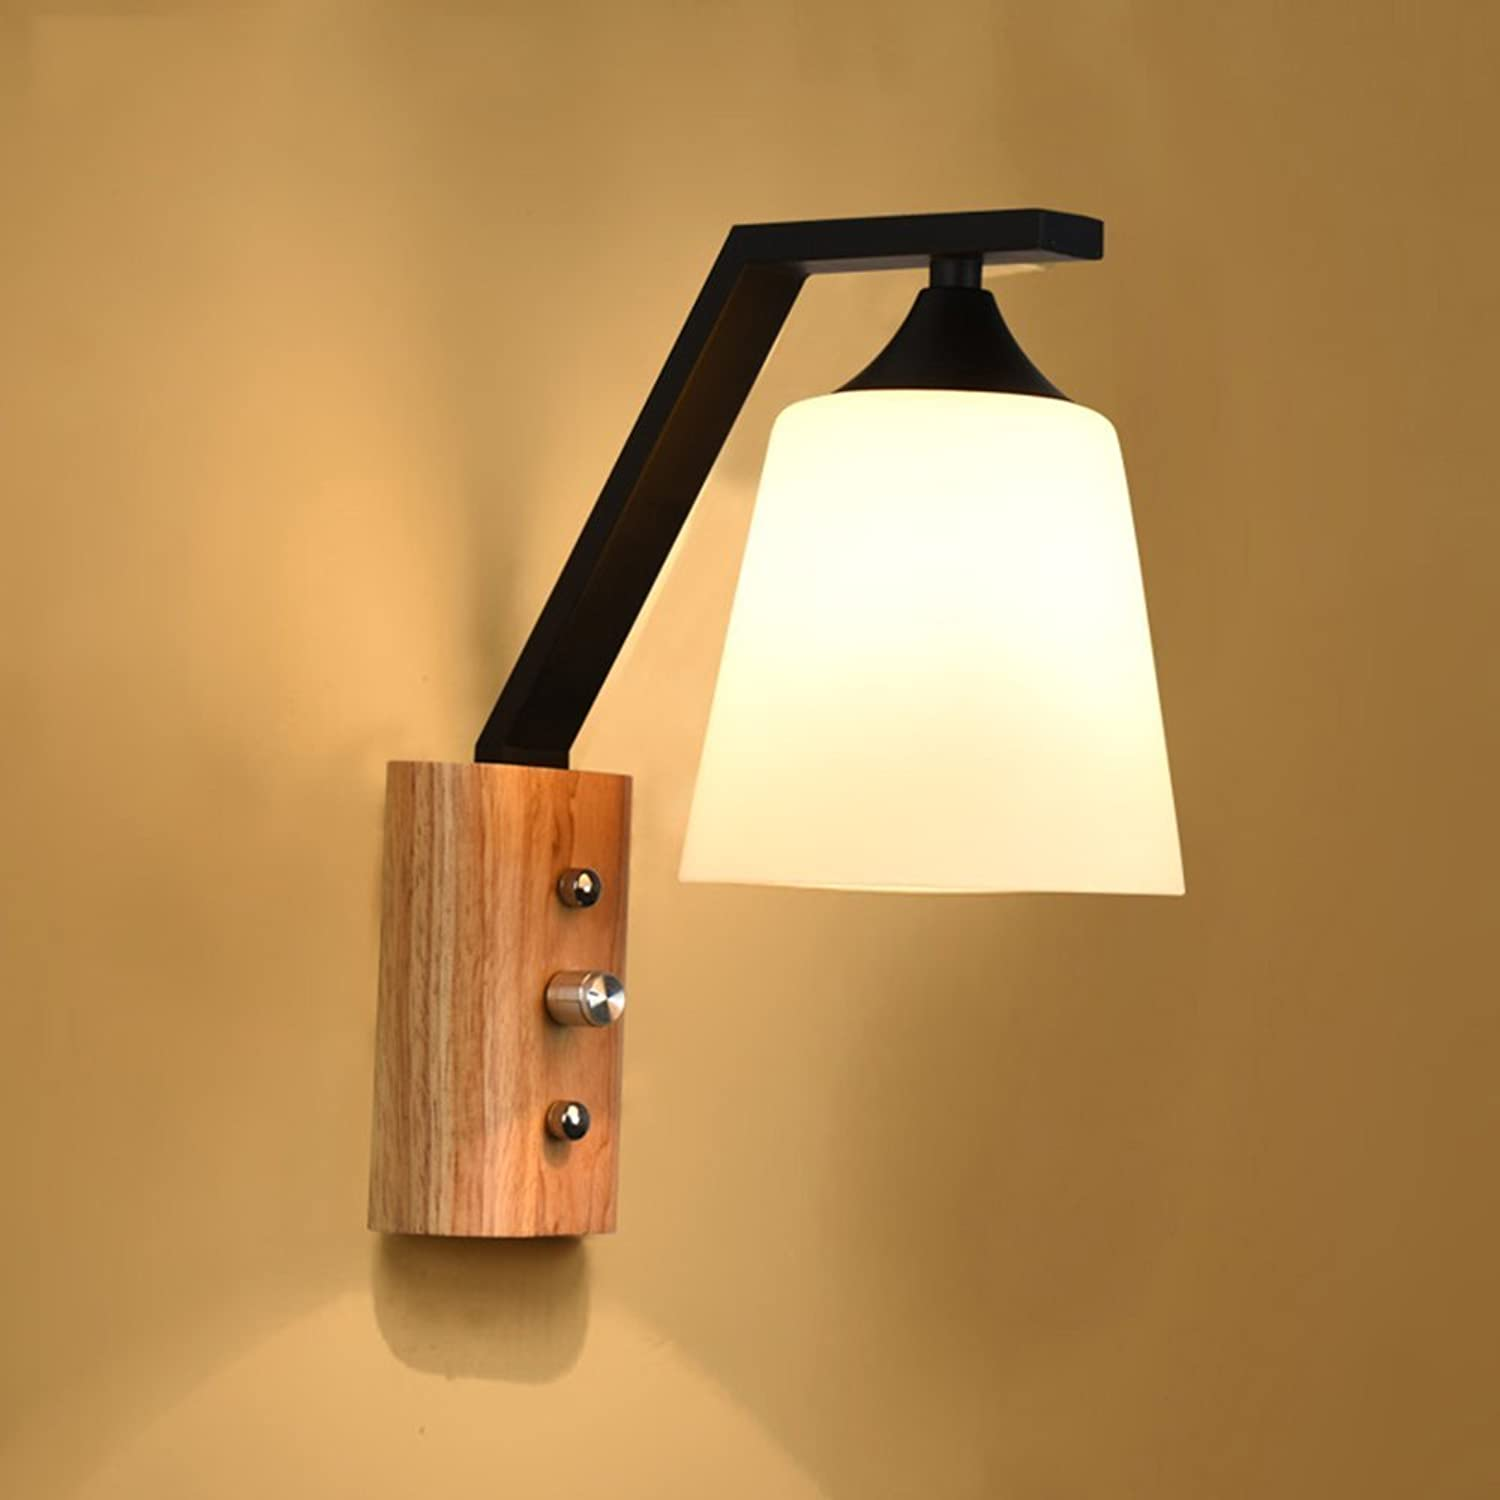 GRY Nordic Modern Einfache Wohnzimmer Holz Wandleuchte, Single Headed Led Wandleuchte